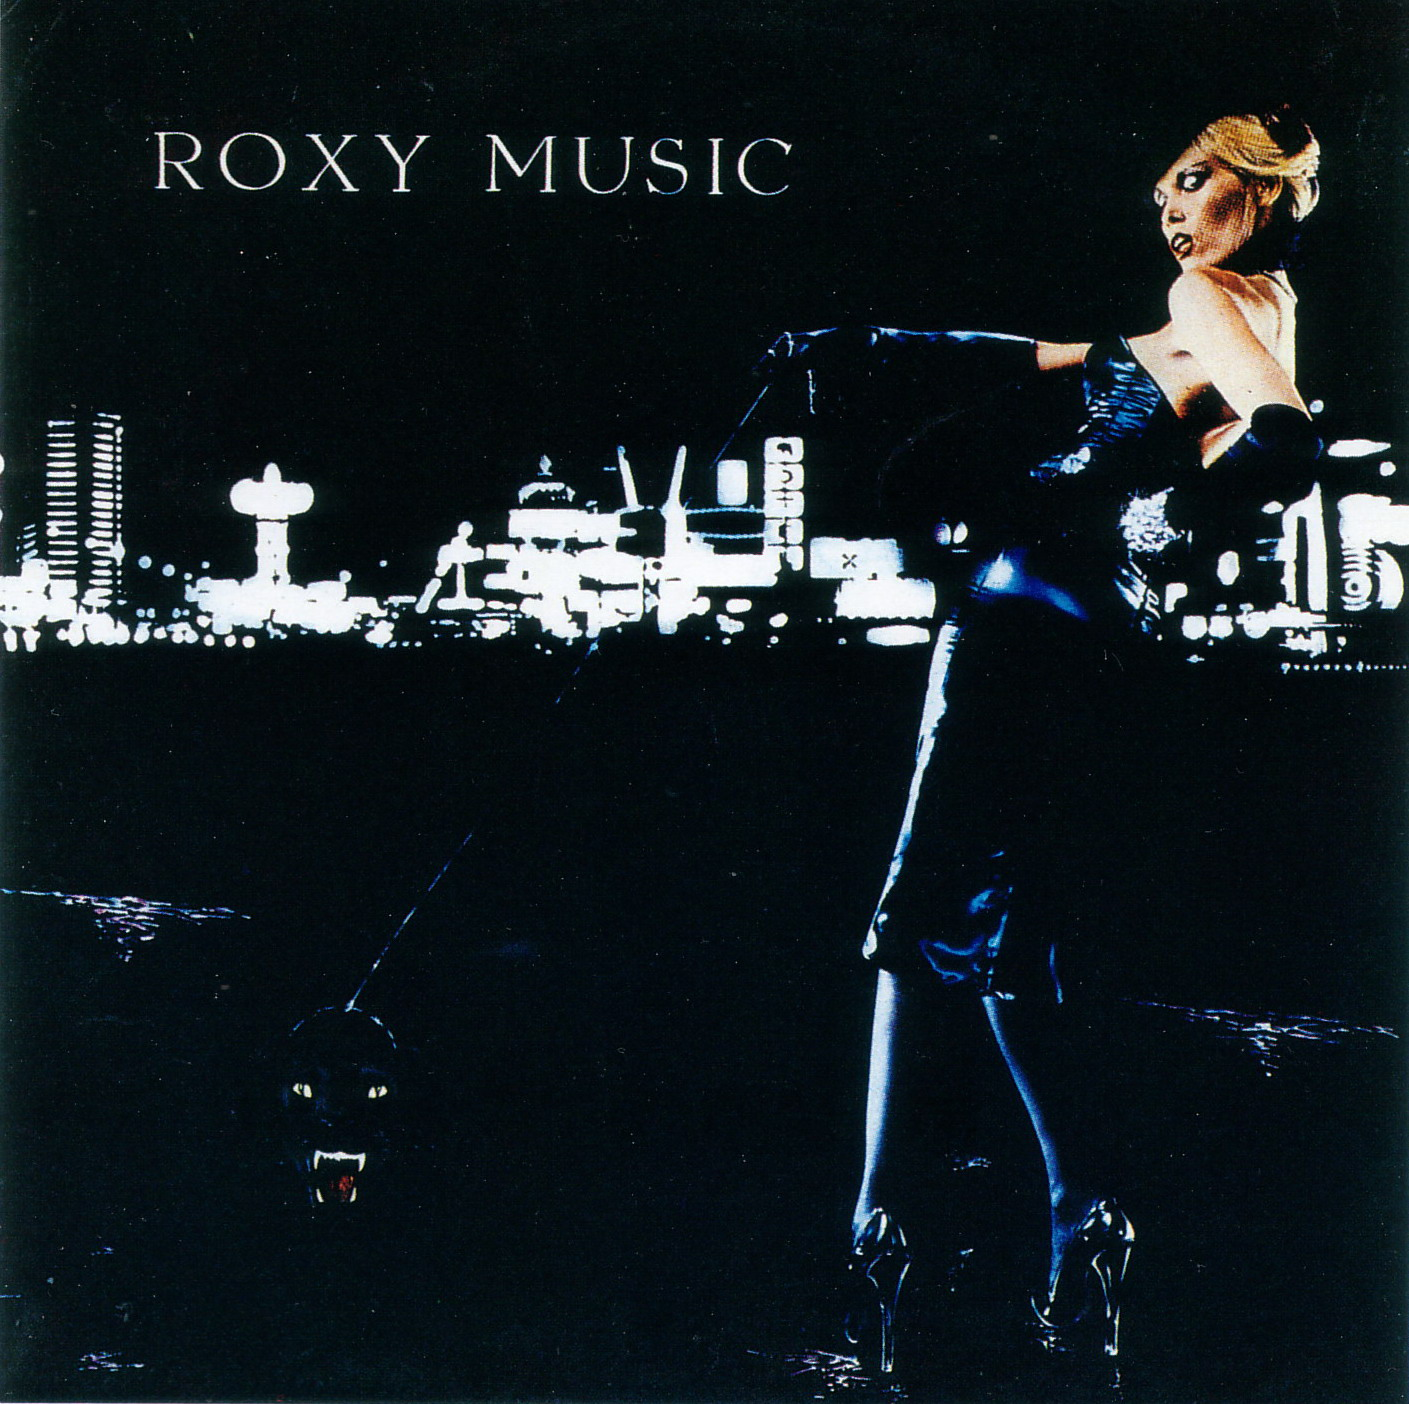 ROXY MUSIC - The Official Site